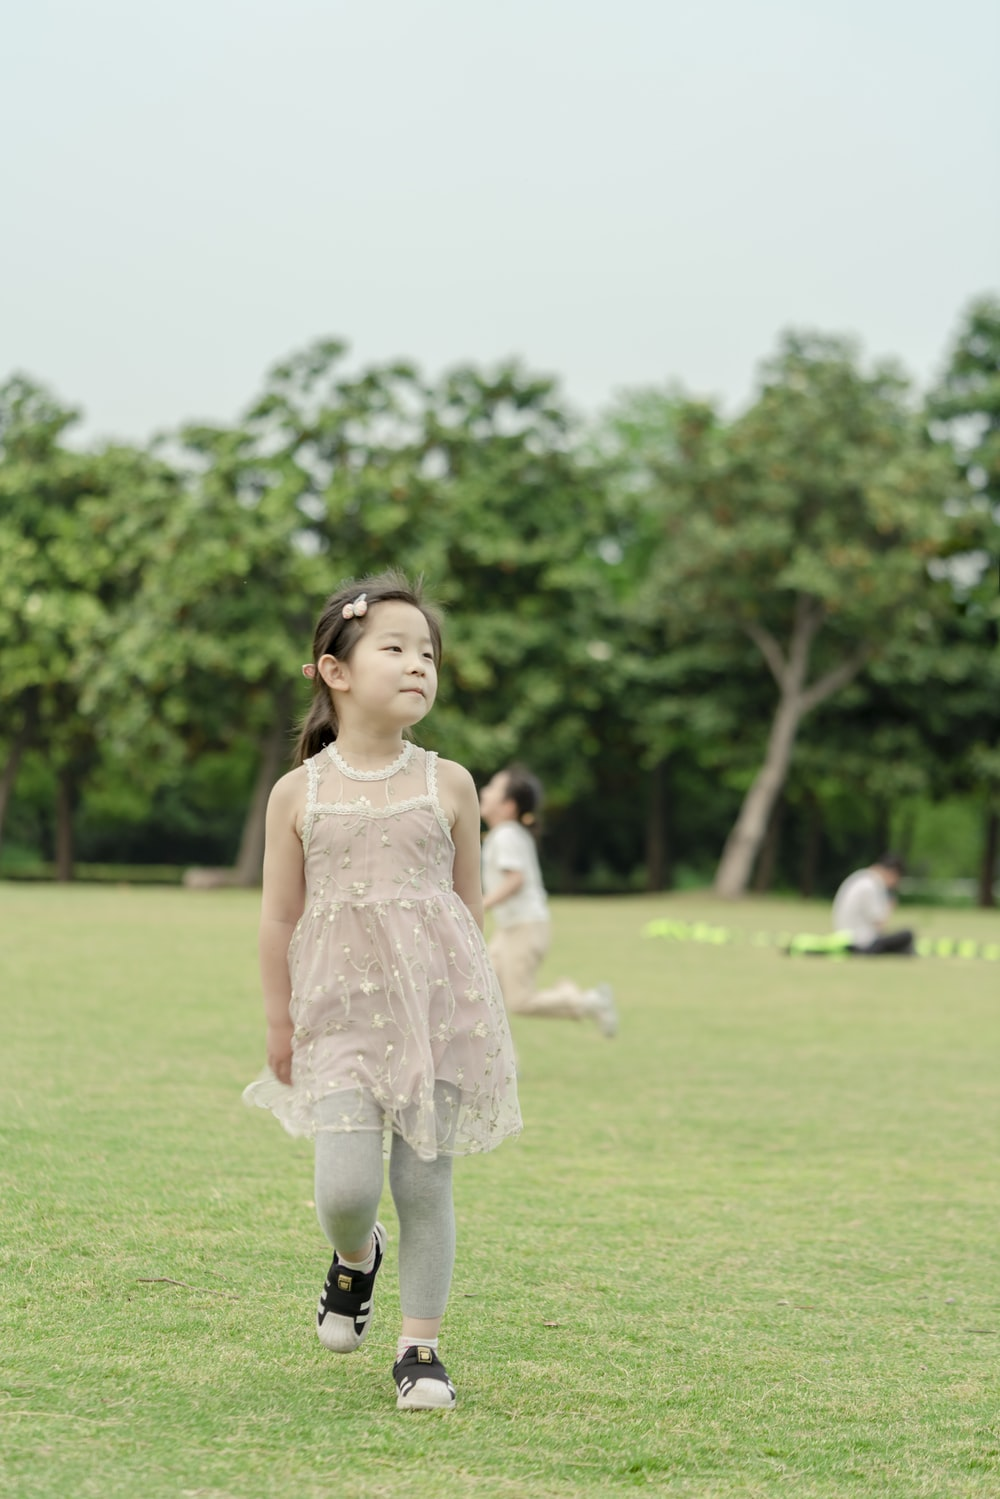 girl in white floral dress standing on green grass field during daytime